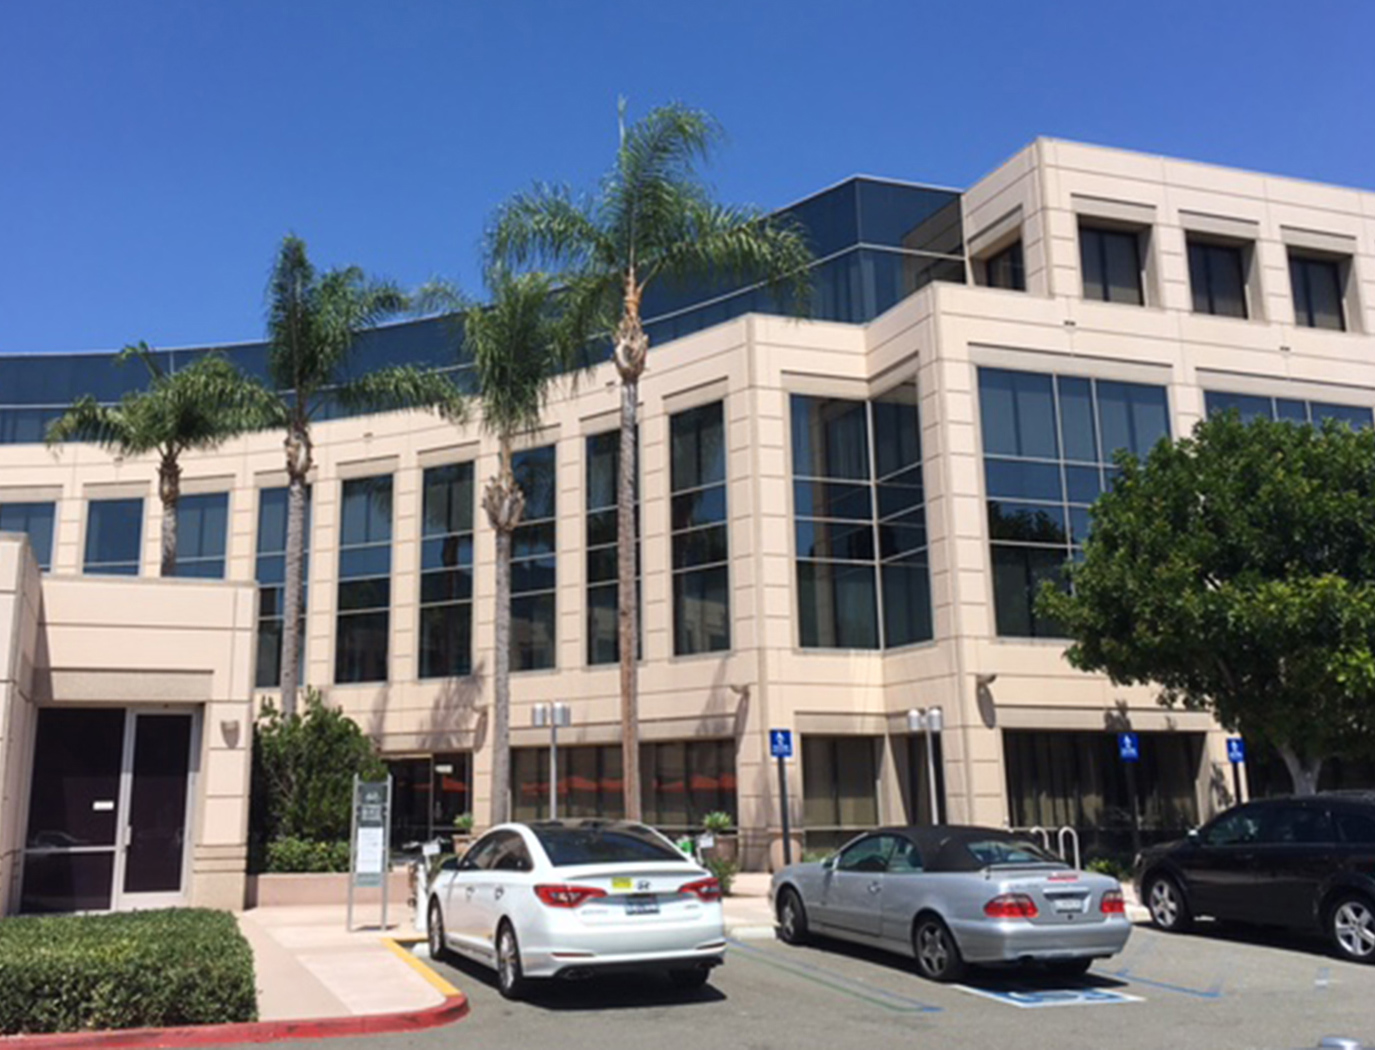 Pacific Law Partners Irvine office location